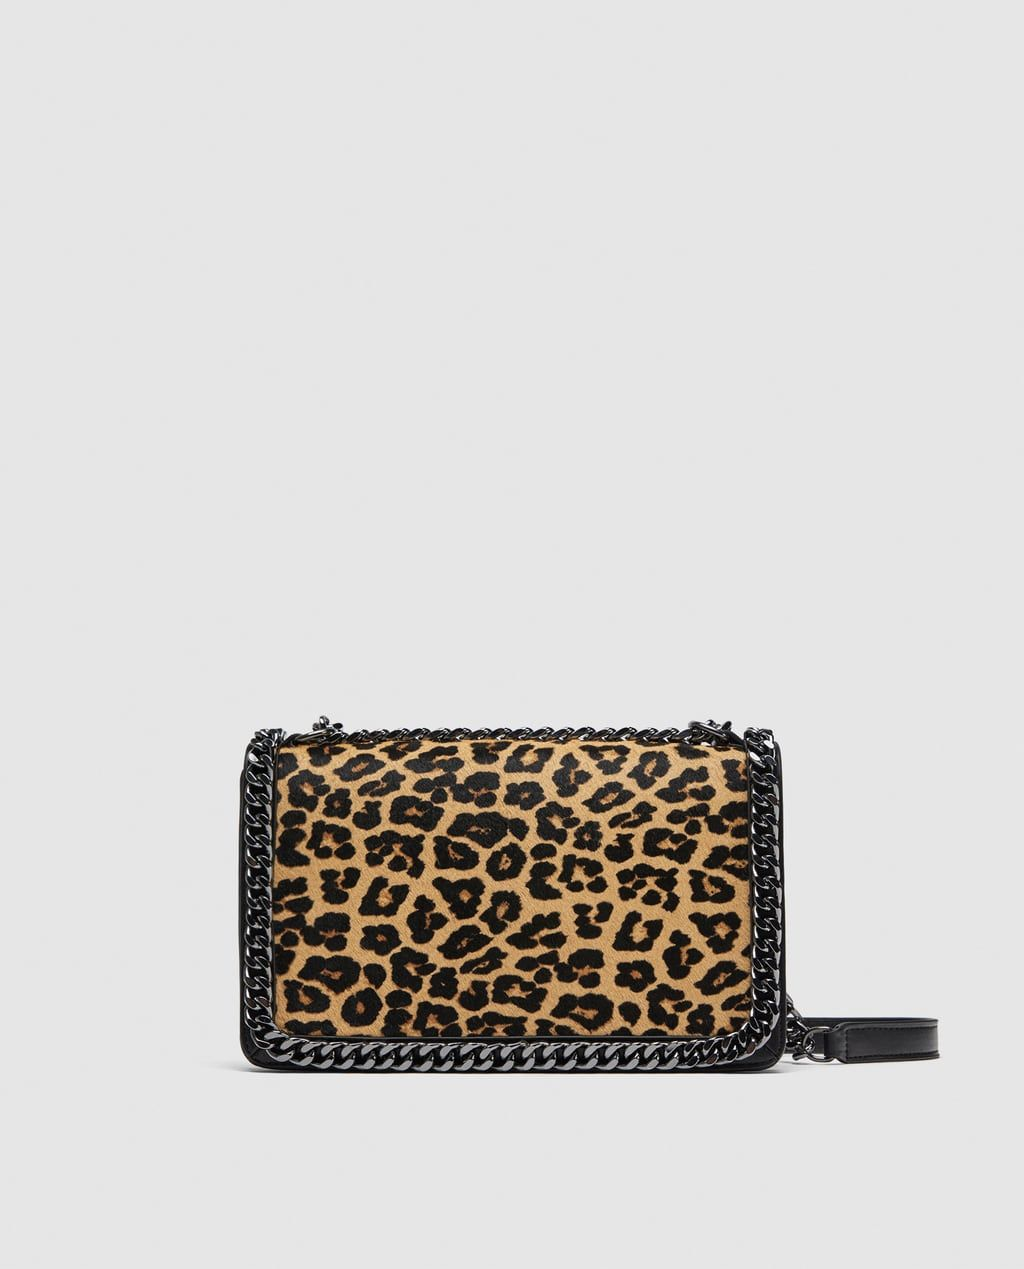 270520153fc7 Image 2 of LEOPARD PRINT LEATHER CROSSBODY BAG from Zara | >>Style ...